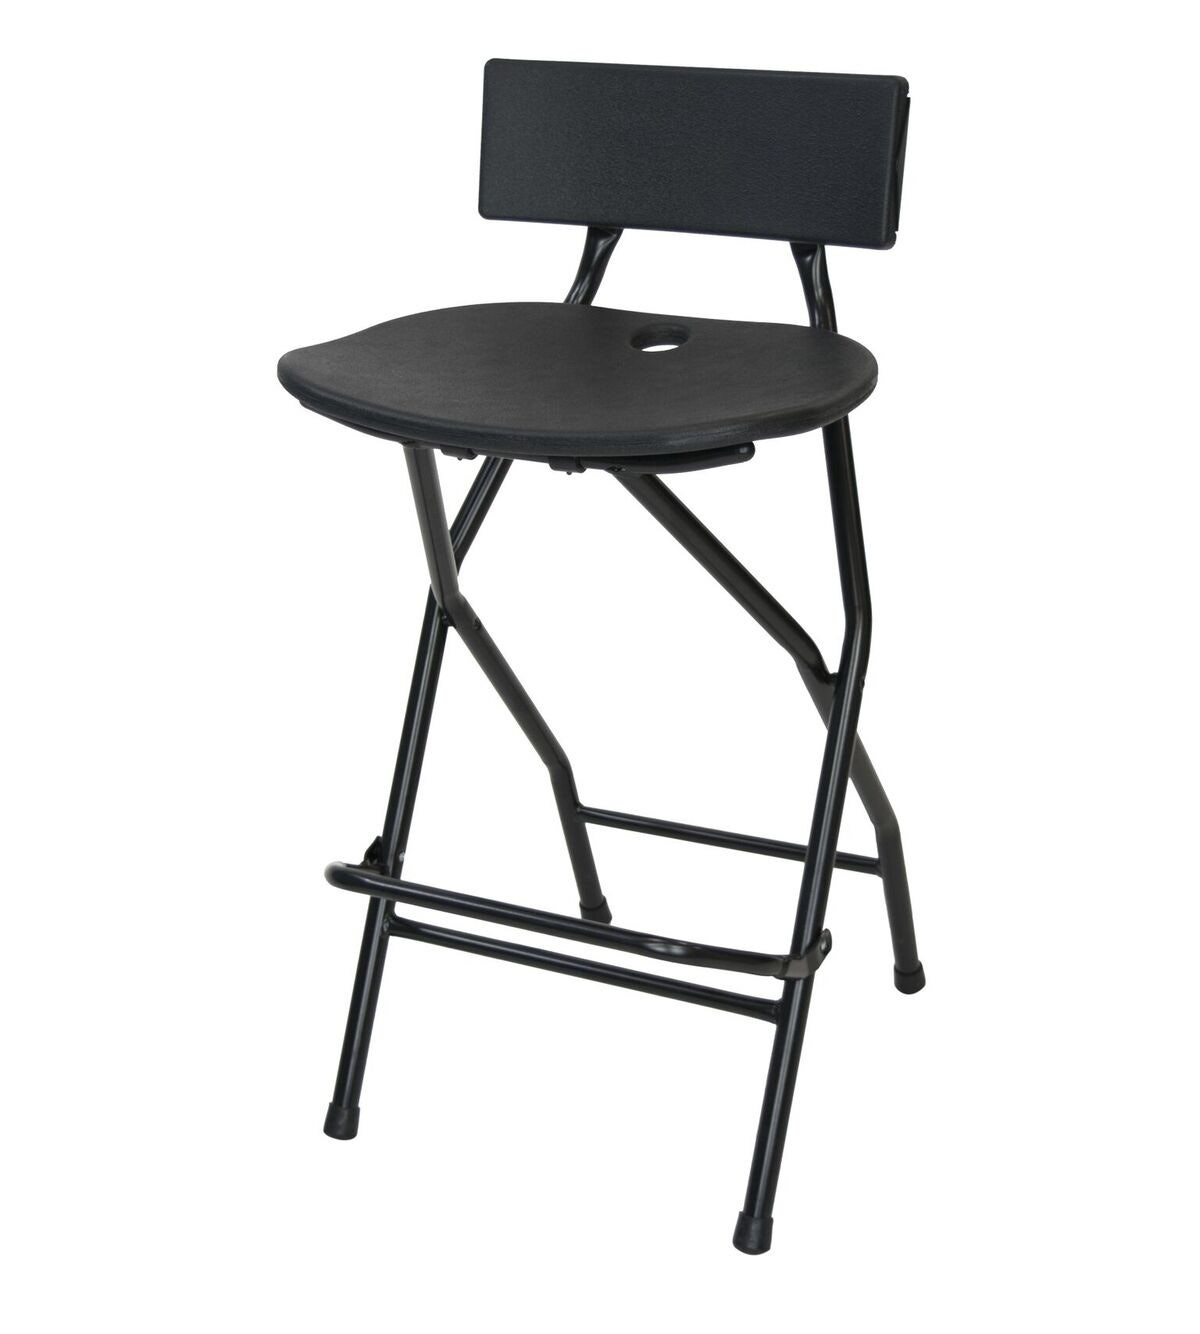 Buy Wholesale Metal Folding Barstools Folding Bar Stool